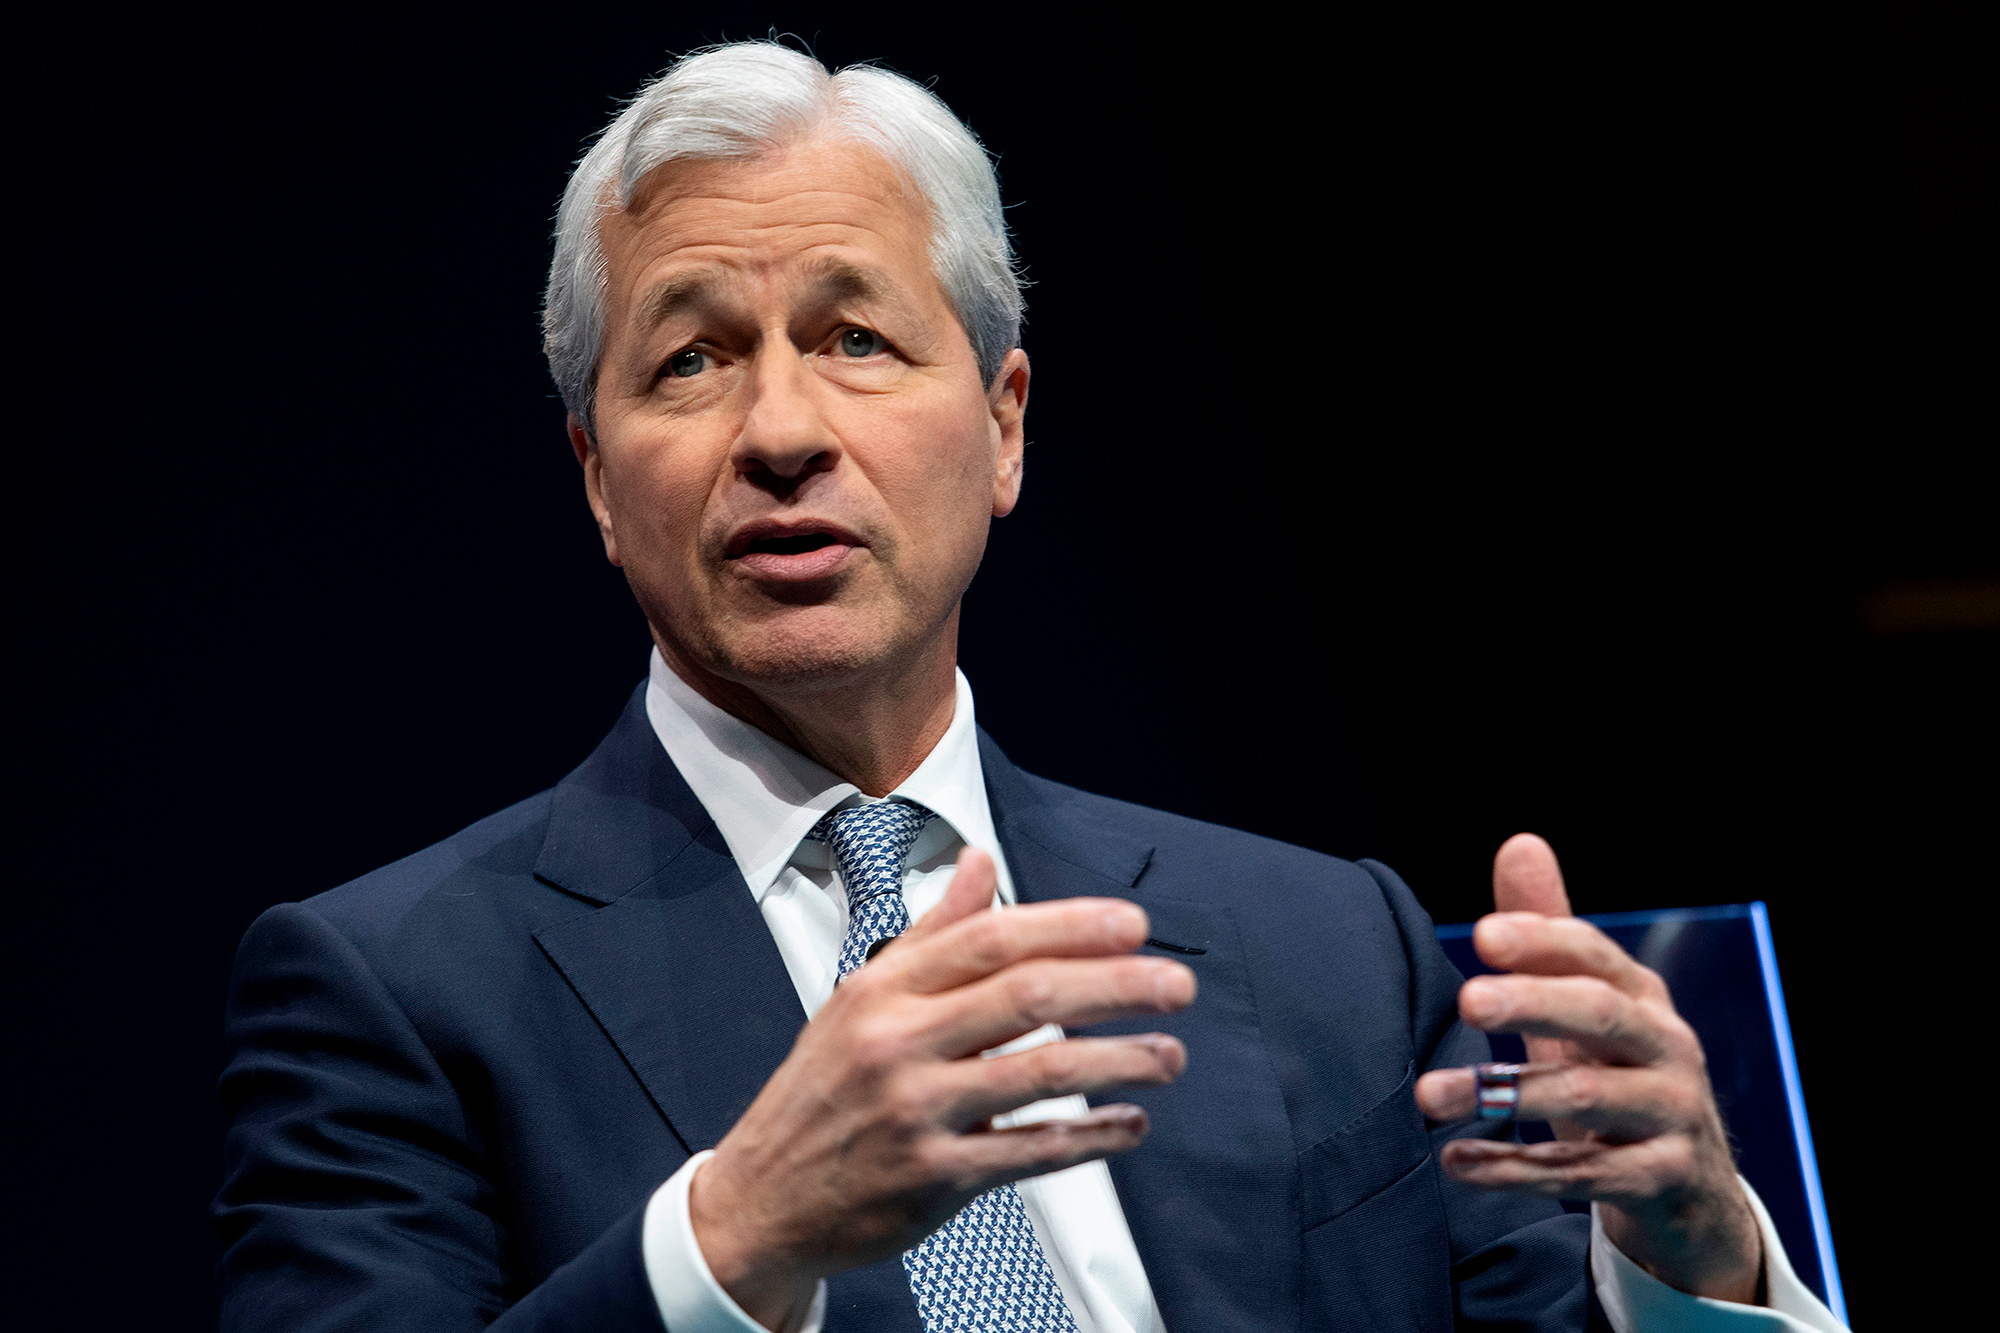 It's shocking that Jamie Dimon is urging a peaceful transfer of power. Here's why